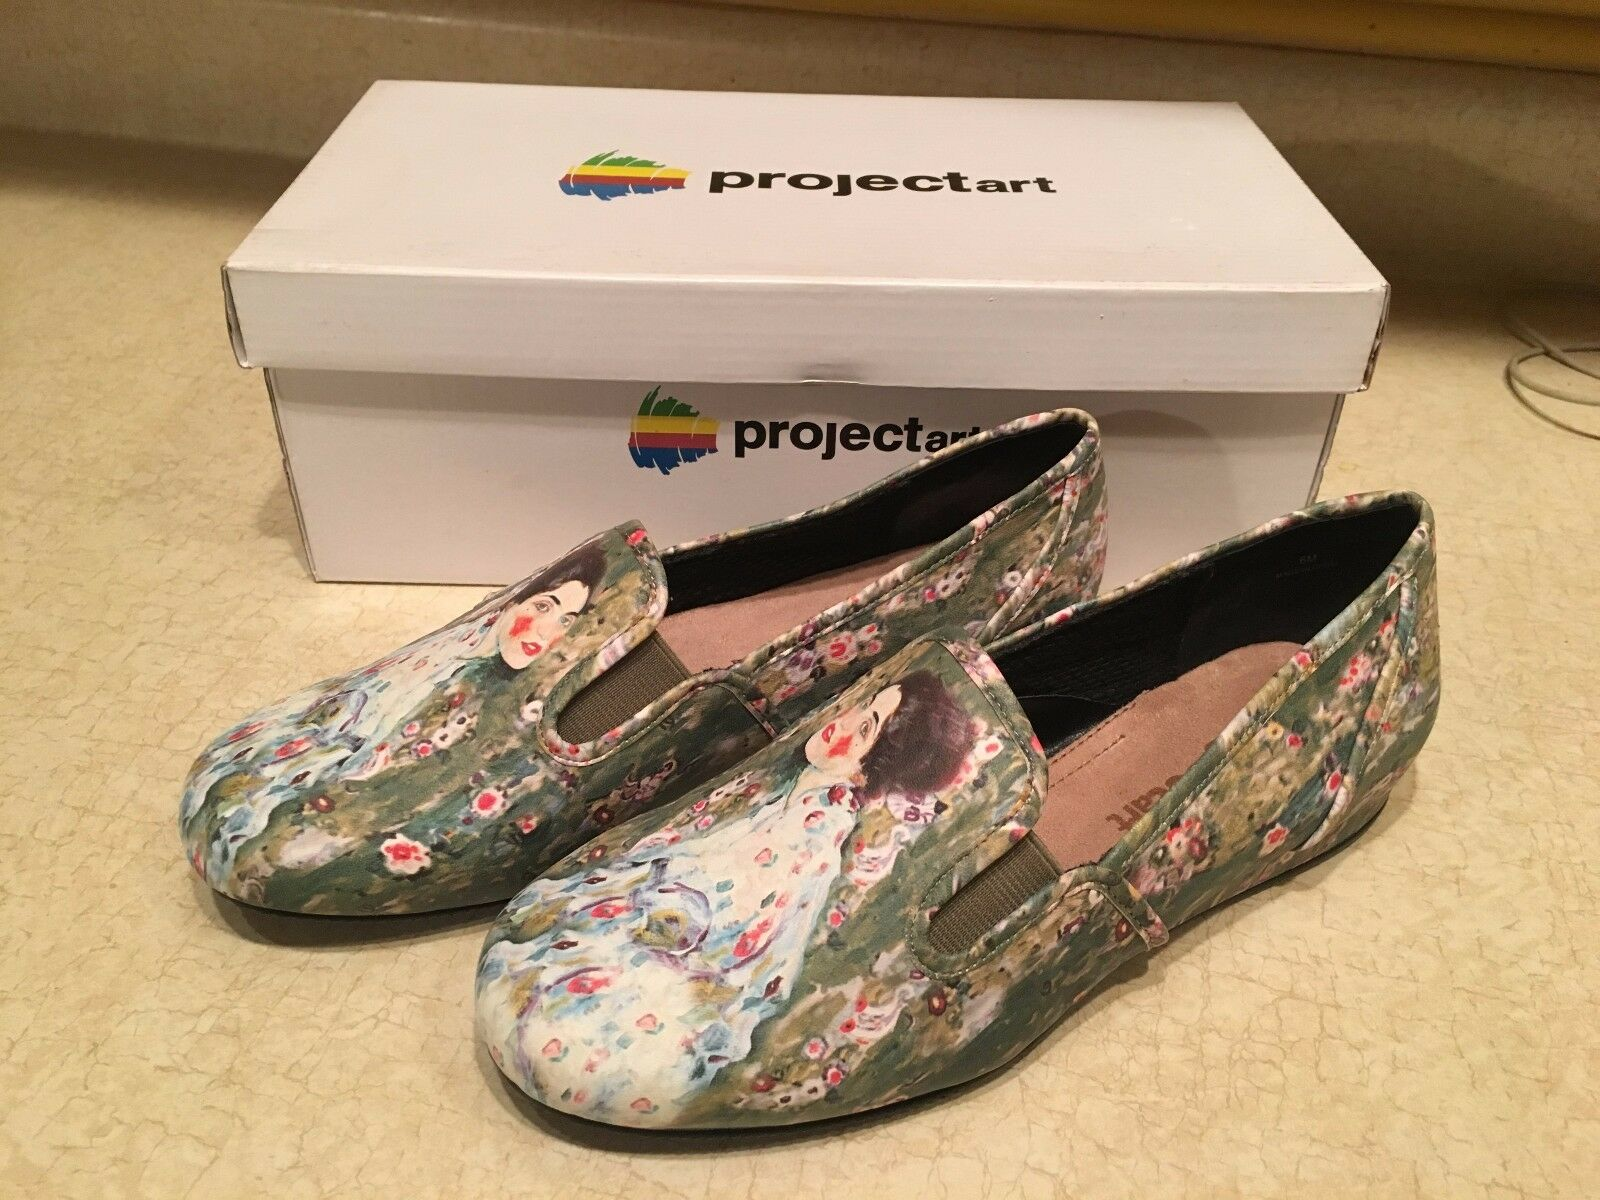 NEW ProjectArt PORTRAIT OF A LADY Loafer shoes in the Original Box Size 6 M